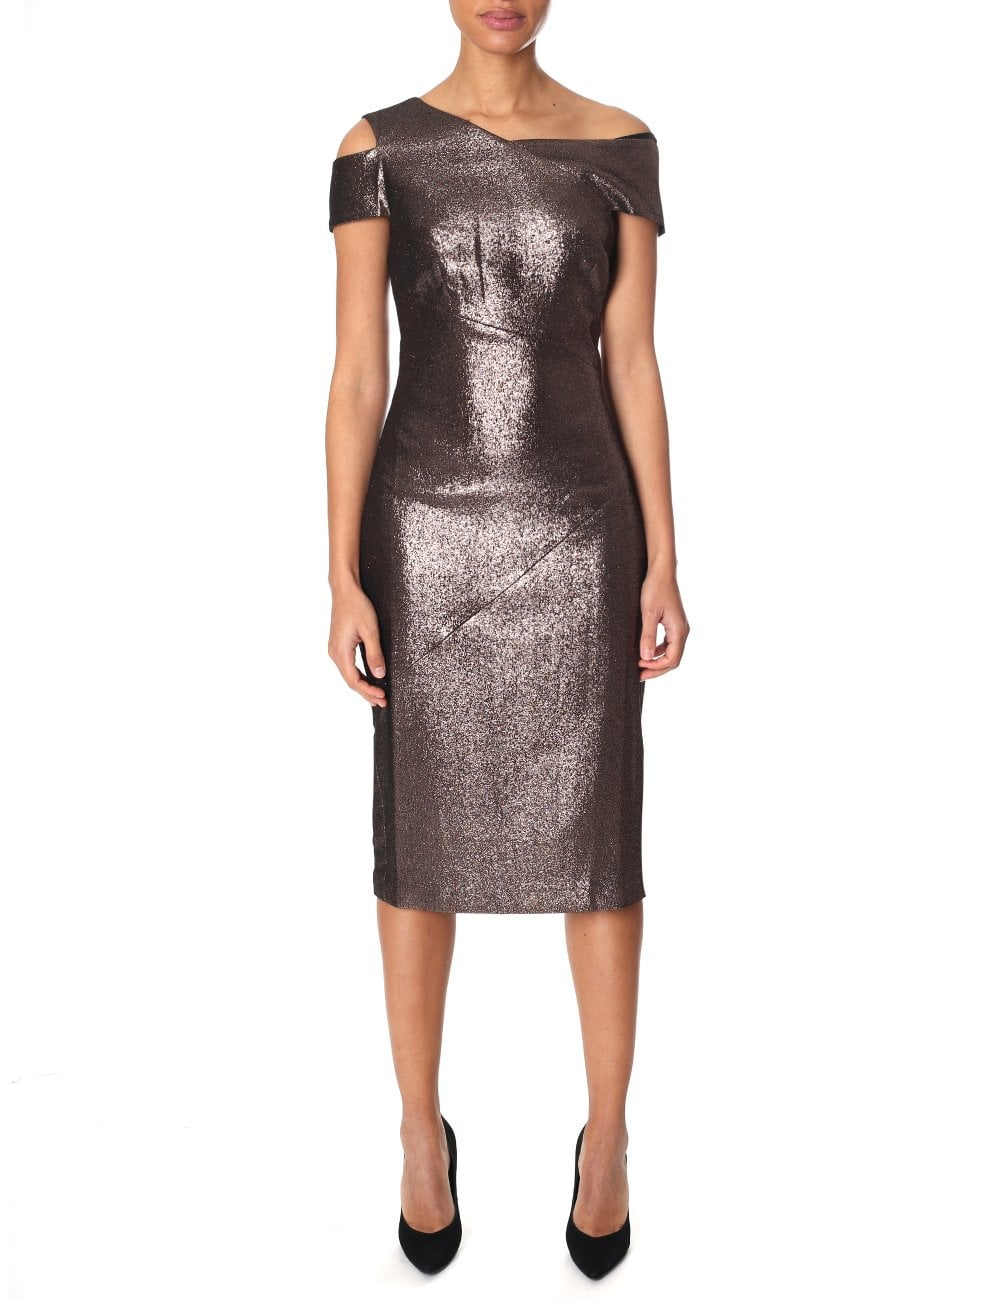 Ted baker bodycon midi dress guide night out